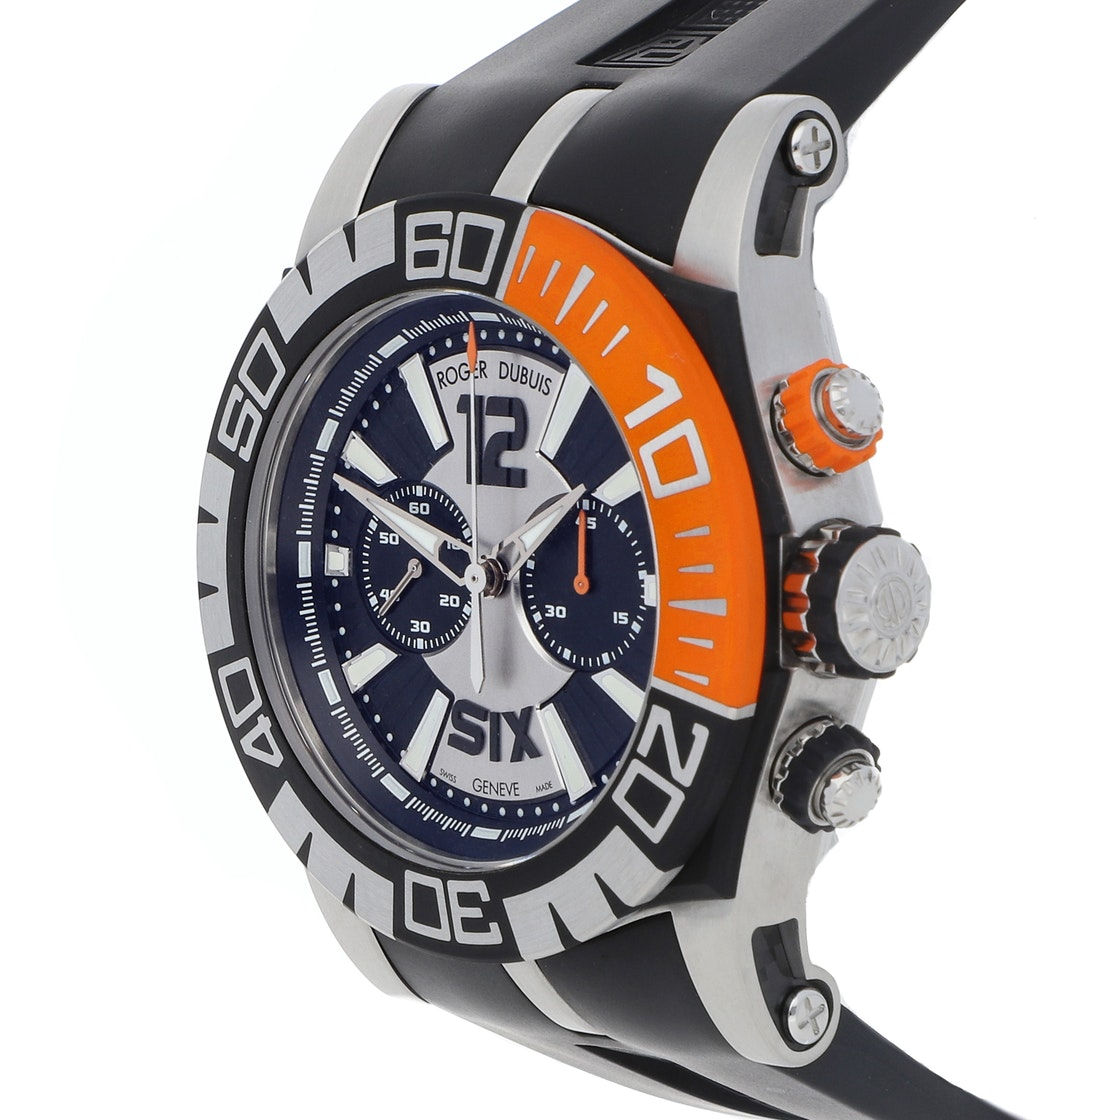 Roger Dubuis Easy Diver Chronograph Limited Edition DBSE0254